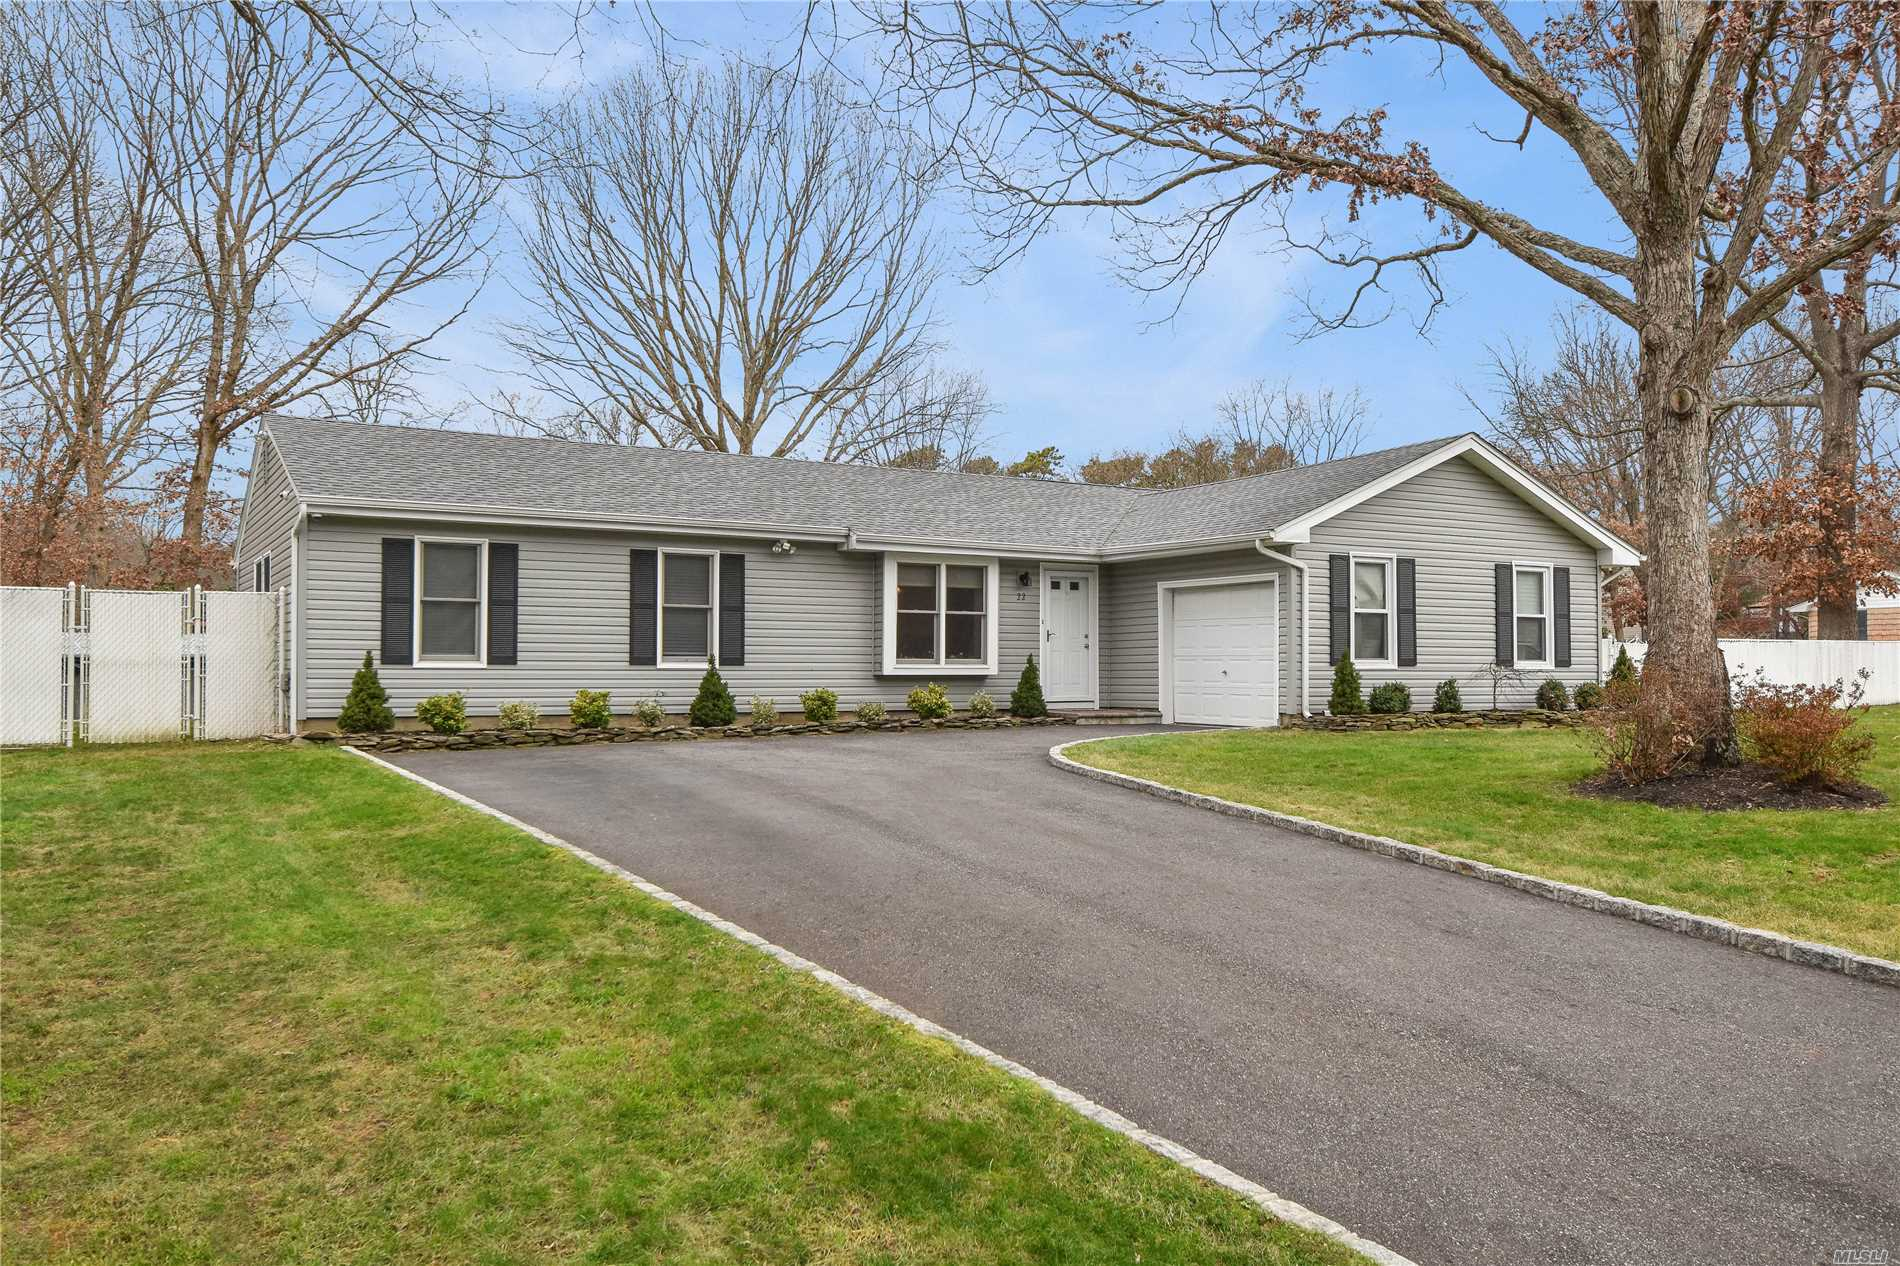 Beautifully Updated Ranch With Hi Hat Lighting And Vaulted Ceilings Updated Kitchen With Granite Counter Tops, 2 New Full Baths, New Flooring, Roof, Vinyl Siding And Driveway. Large Fully Fenced Corner Property With Paver Patio And Firepit.